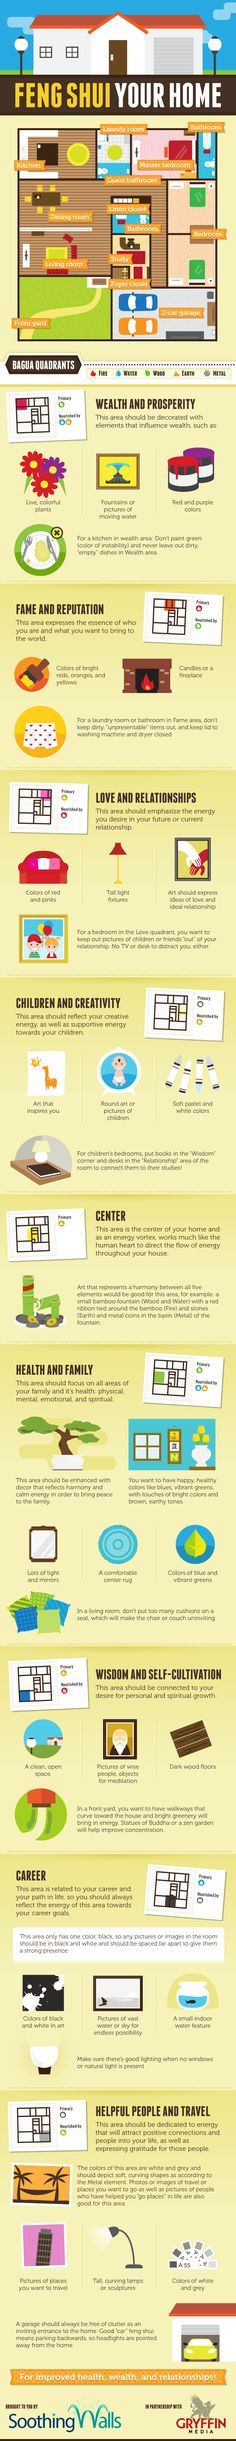 [INFOGRAPHIC] -- 9 Feng Shui Bagua Quadrants #home #design from #landlordstation (very cool!)